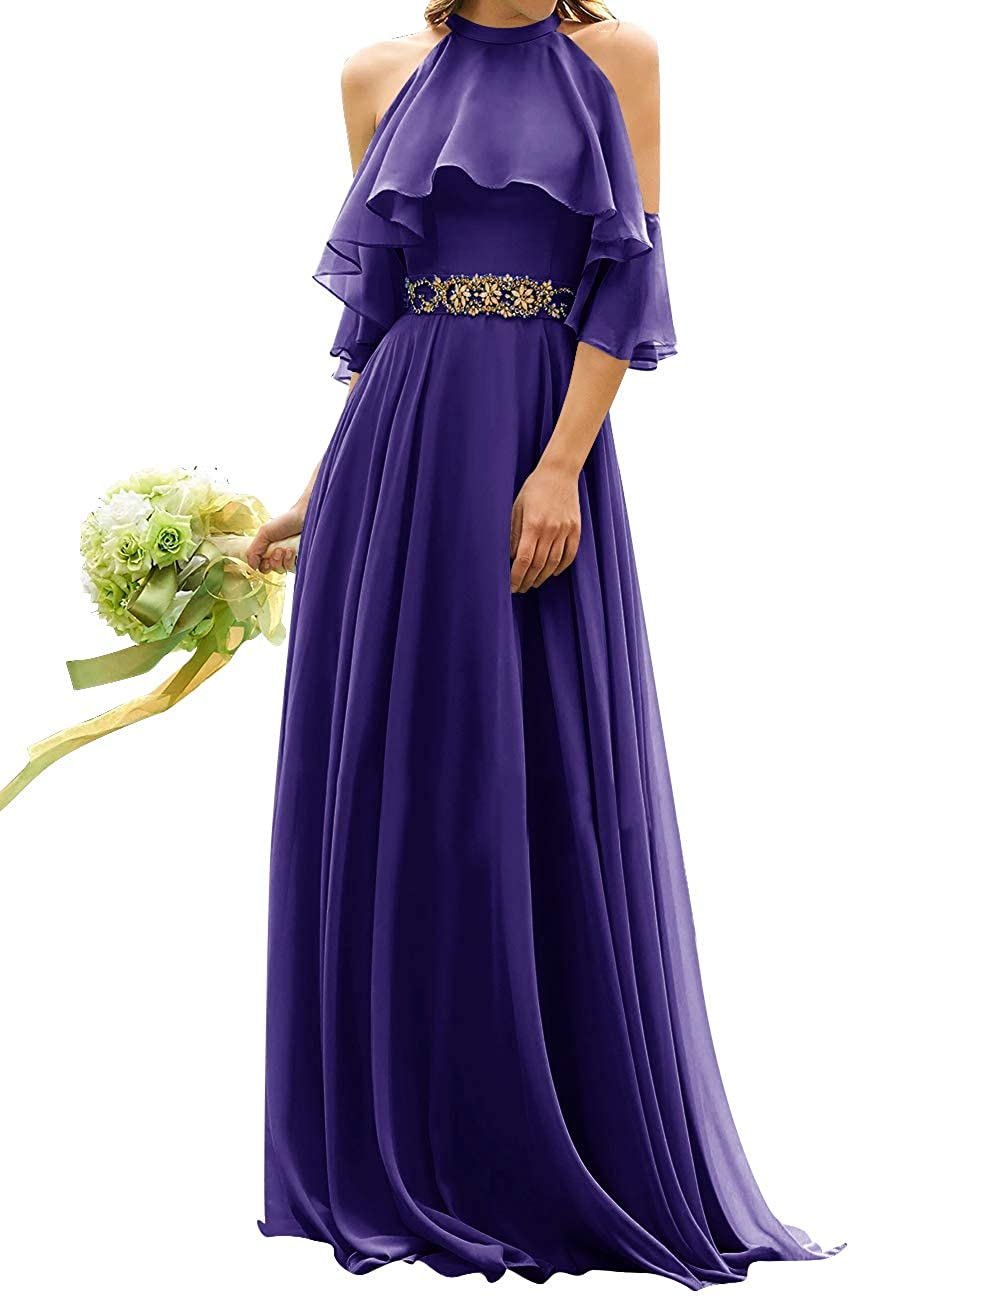 Regency Uther Long Bridesmaid Dress Cold Shoulder Beaded Ruffle Sleeves Wedding Party Dresses